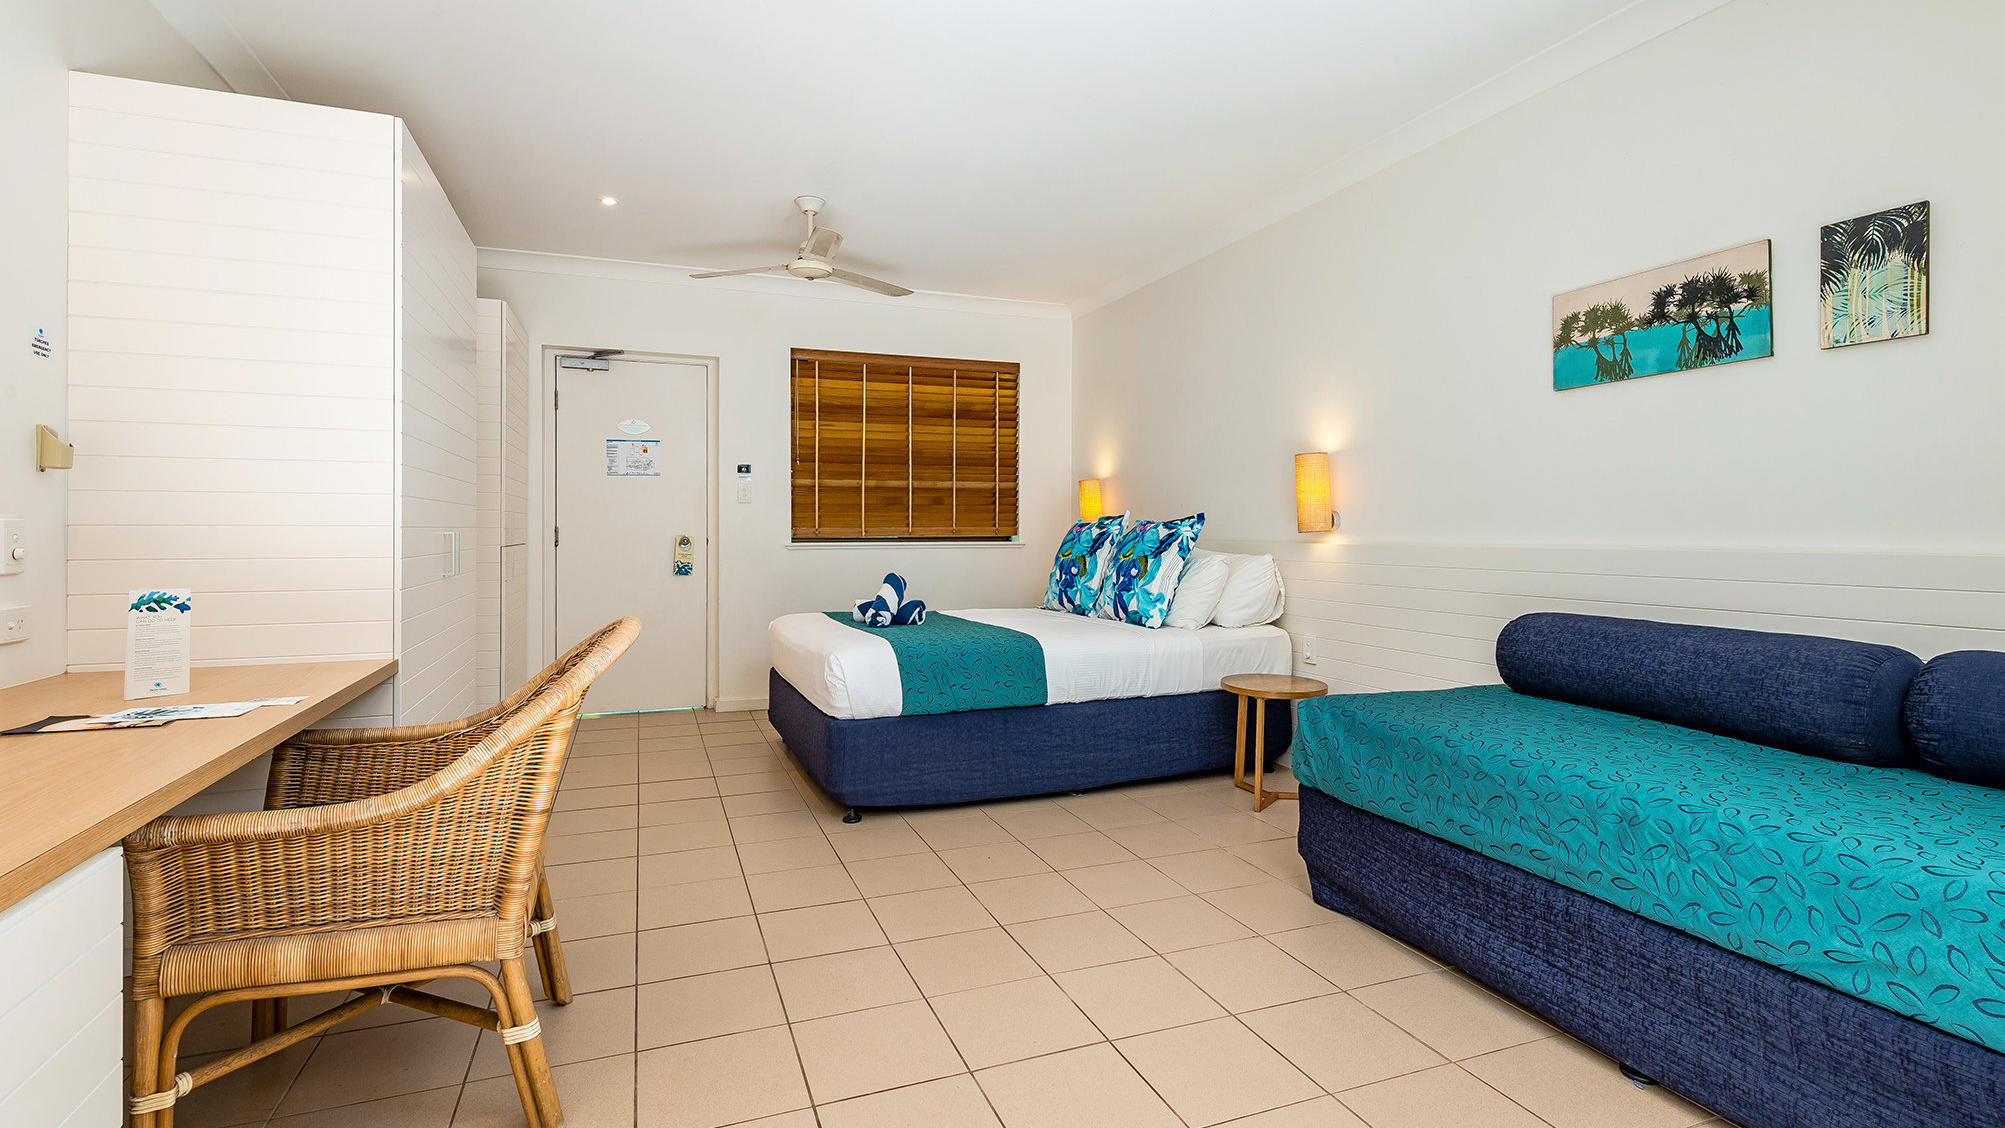 Reef Room at Heron Island Resort in Queensland, Australia